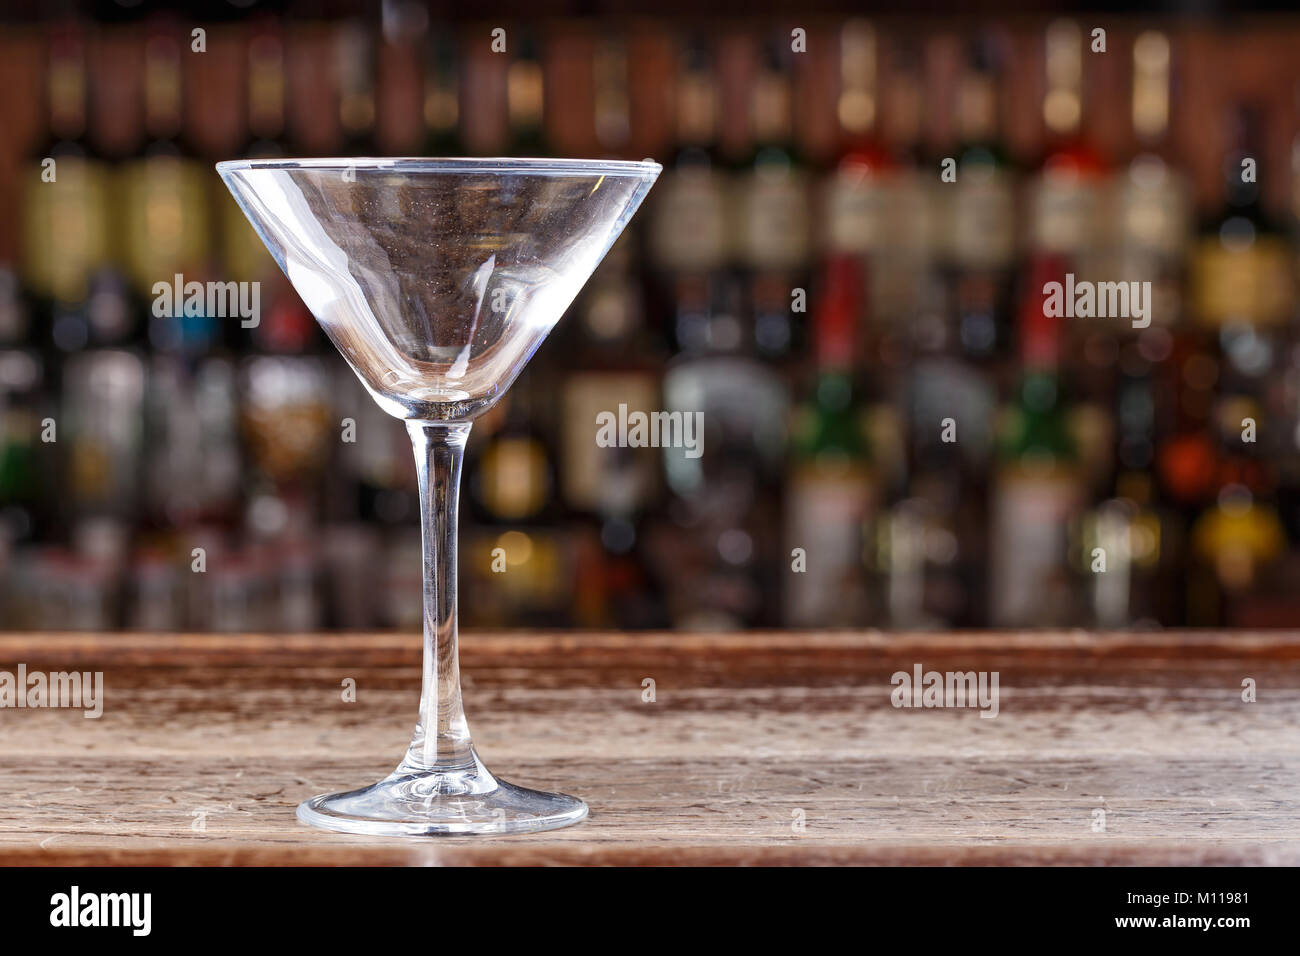 An empty martini glass stands on the bar in the restaurant, on a blurry background of alcohol - Stock Image